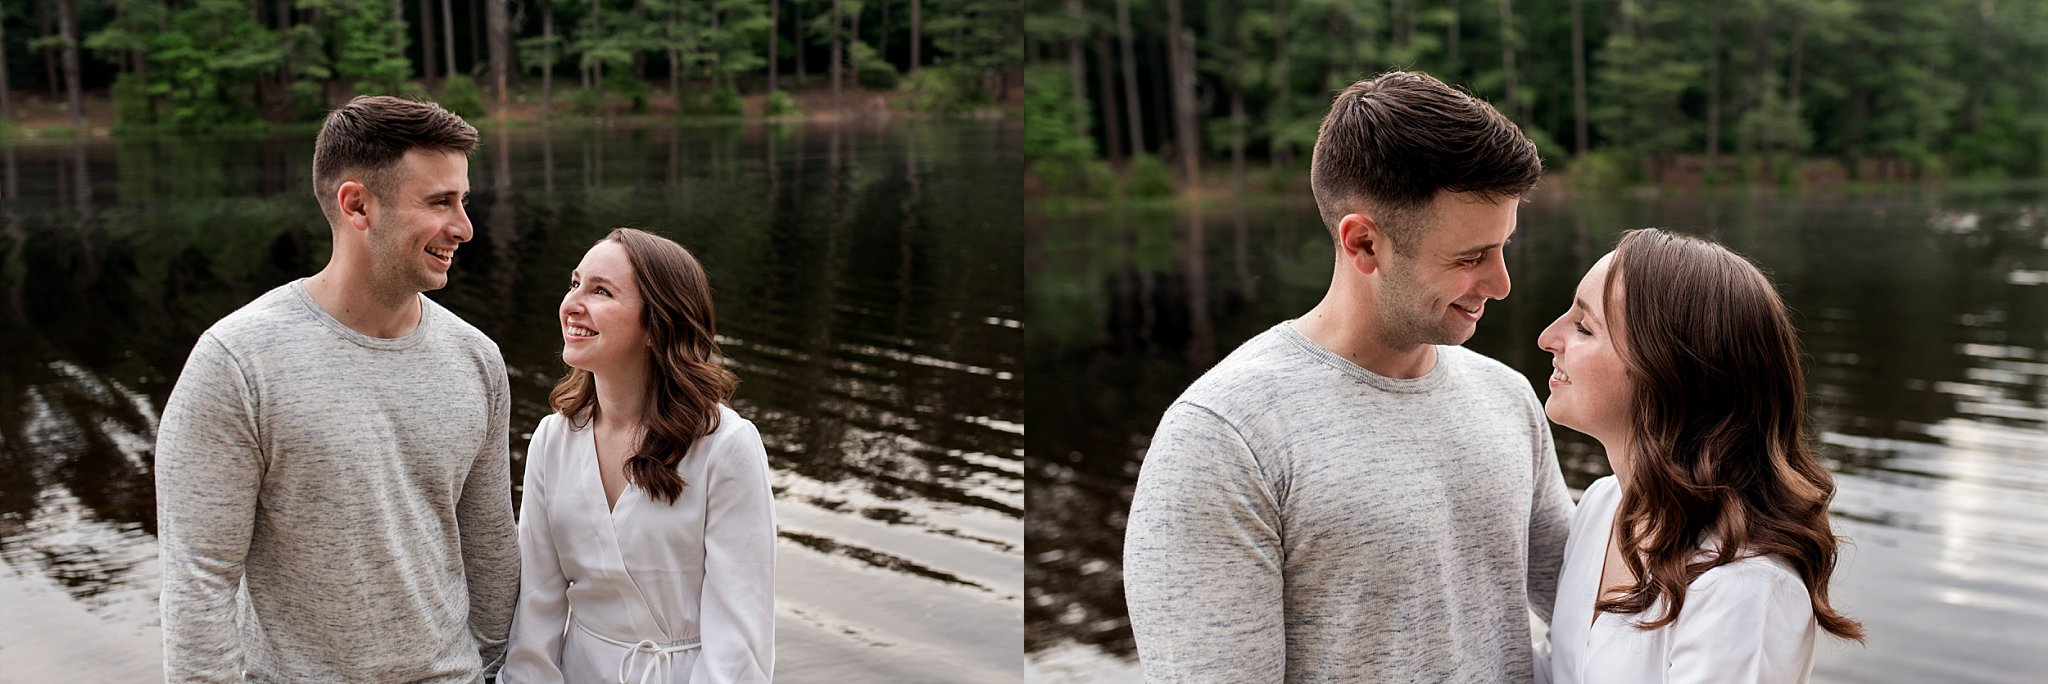 connecticut engagement photography by a pond